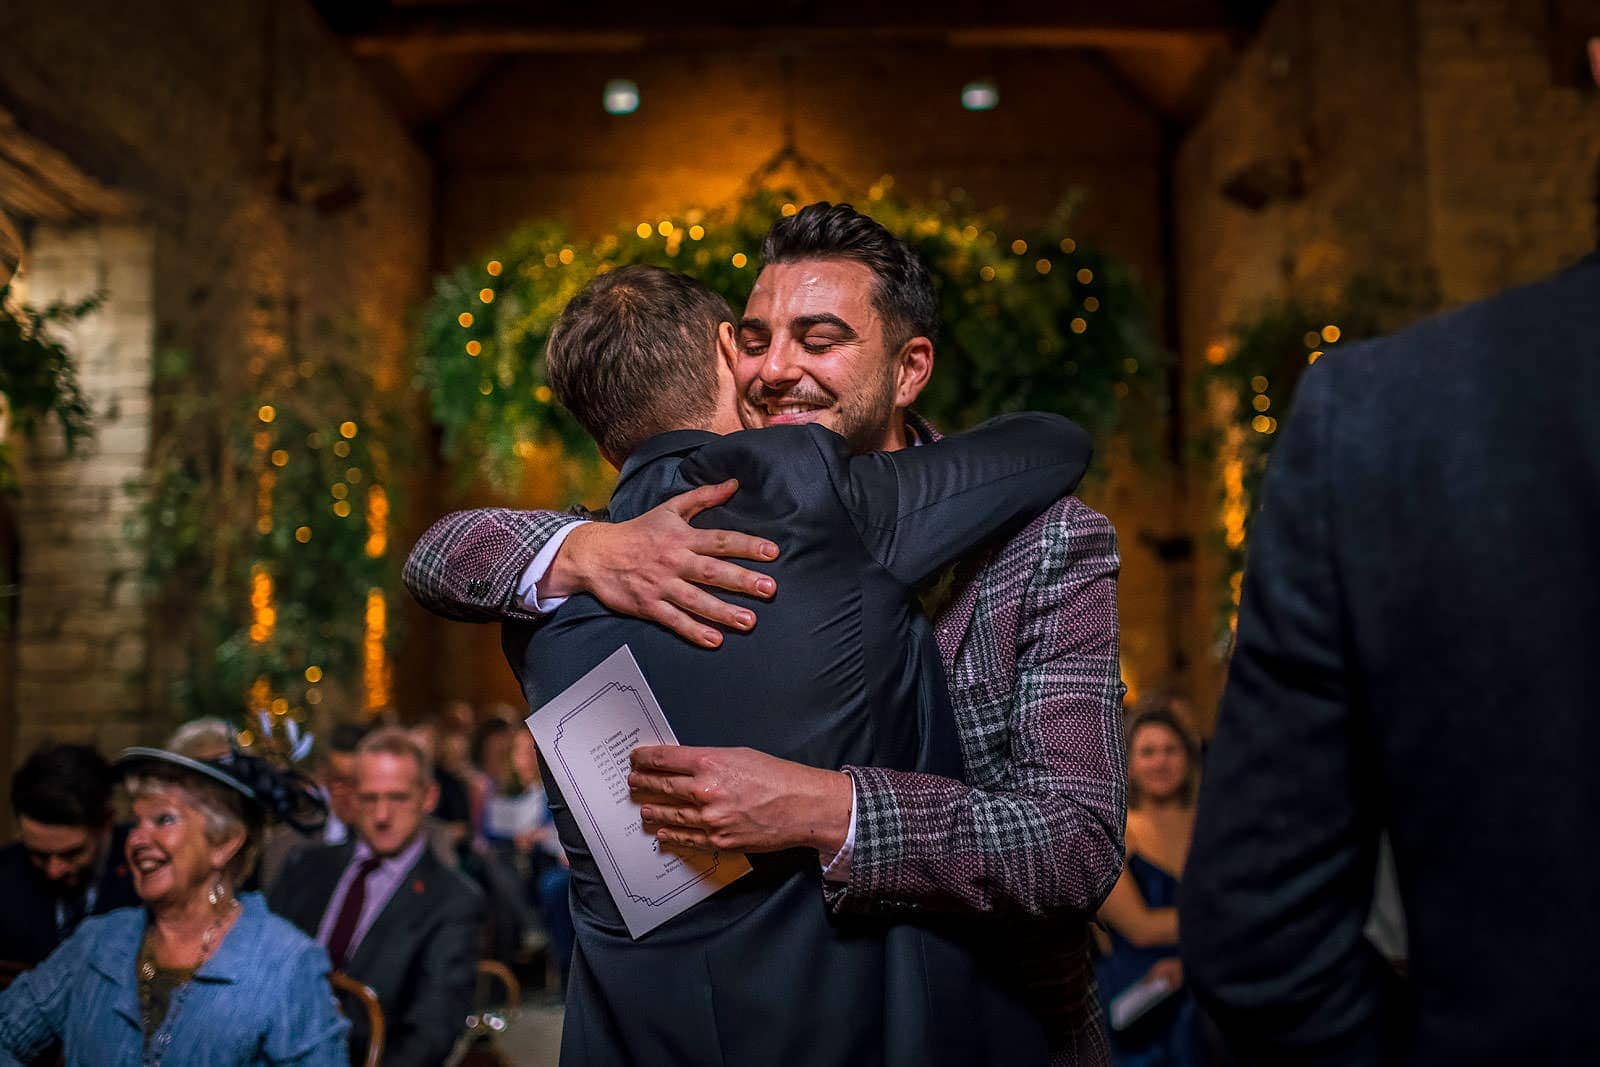 Love and emotion at this wedding